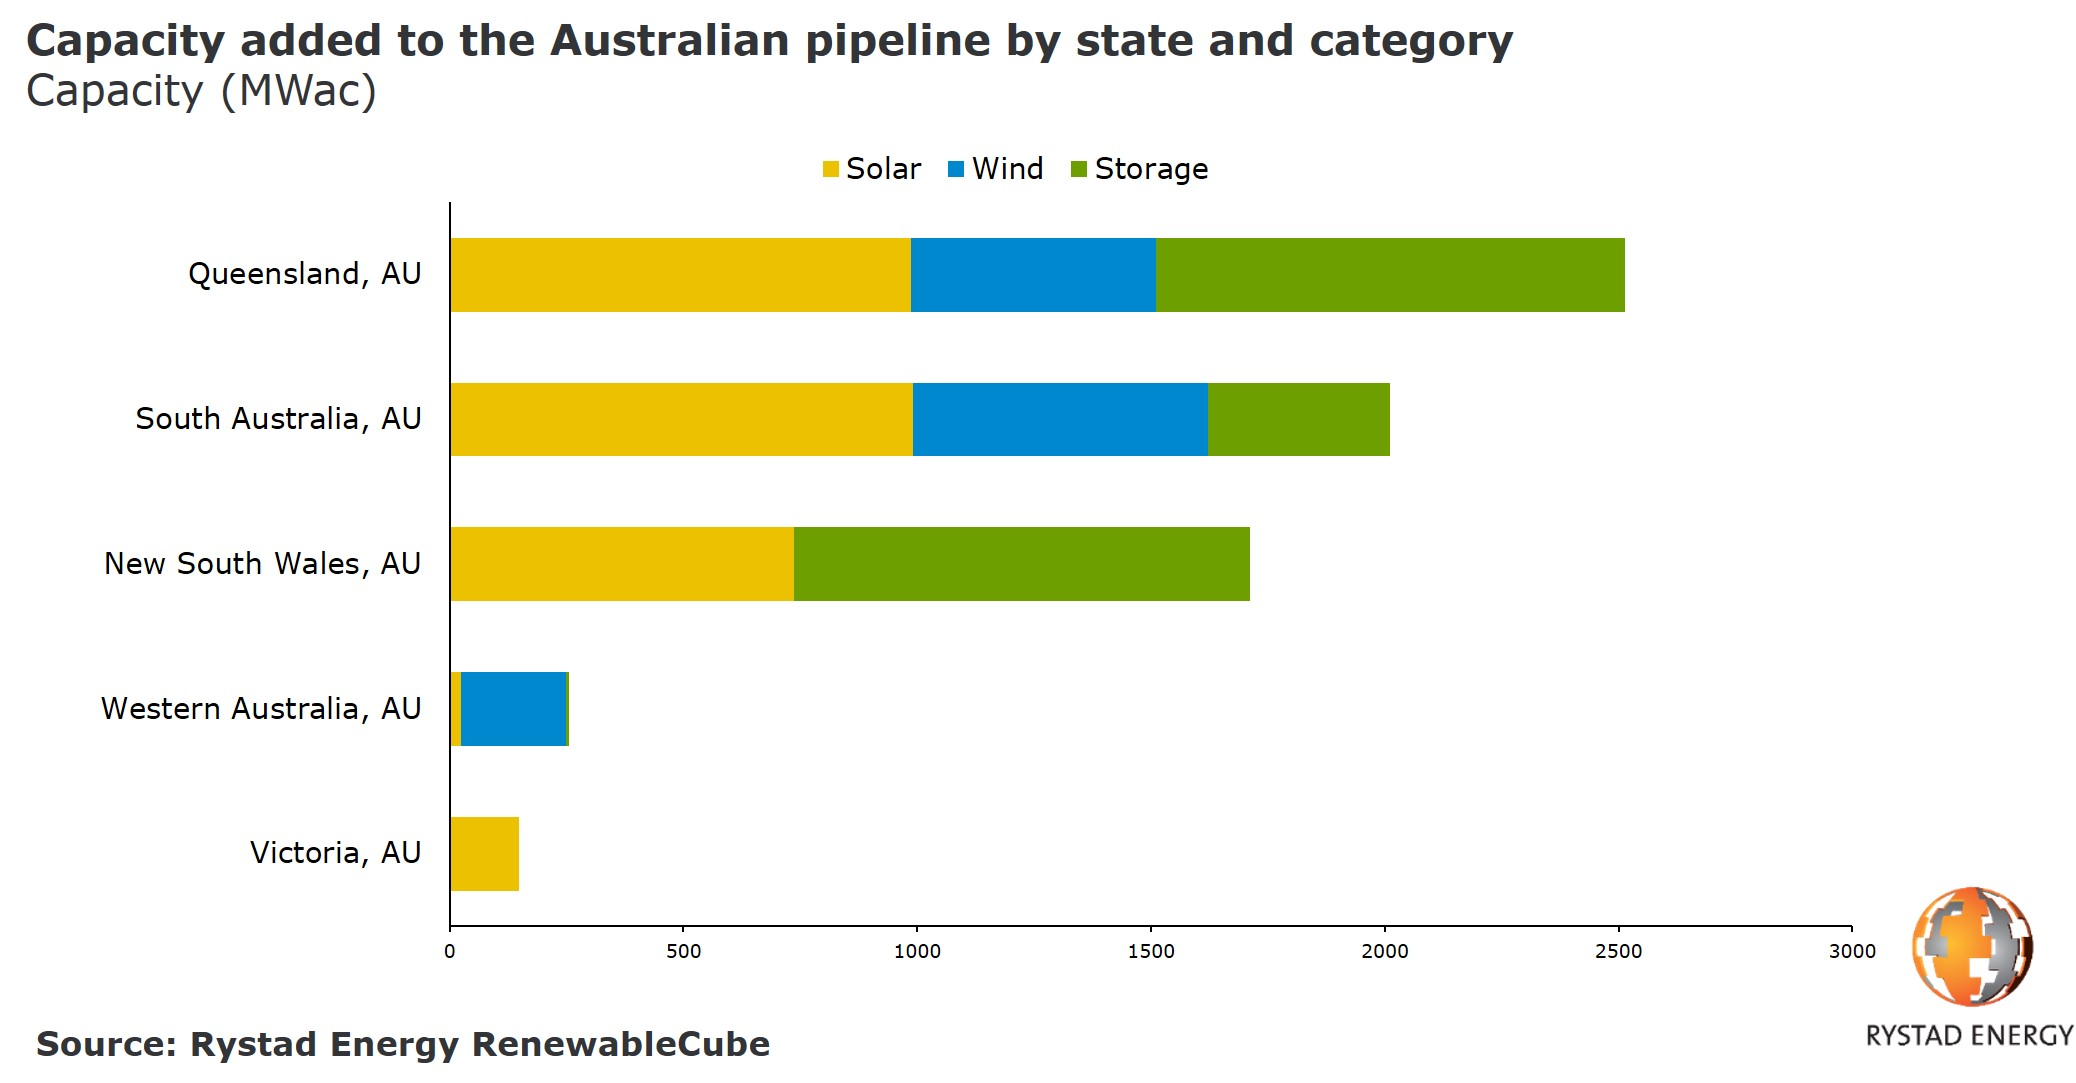 A chart showing the capacity added to the Australian pipeline by state and category in Capacity (MWac). Source: Rystad Energy RenewableCube